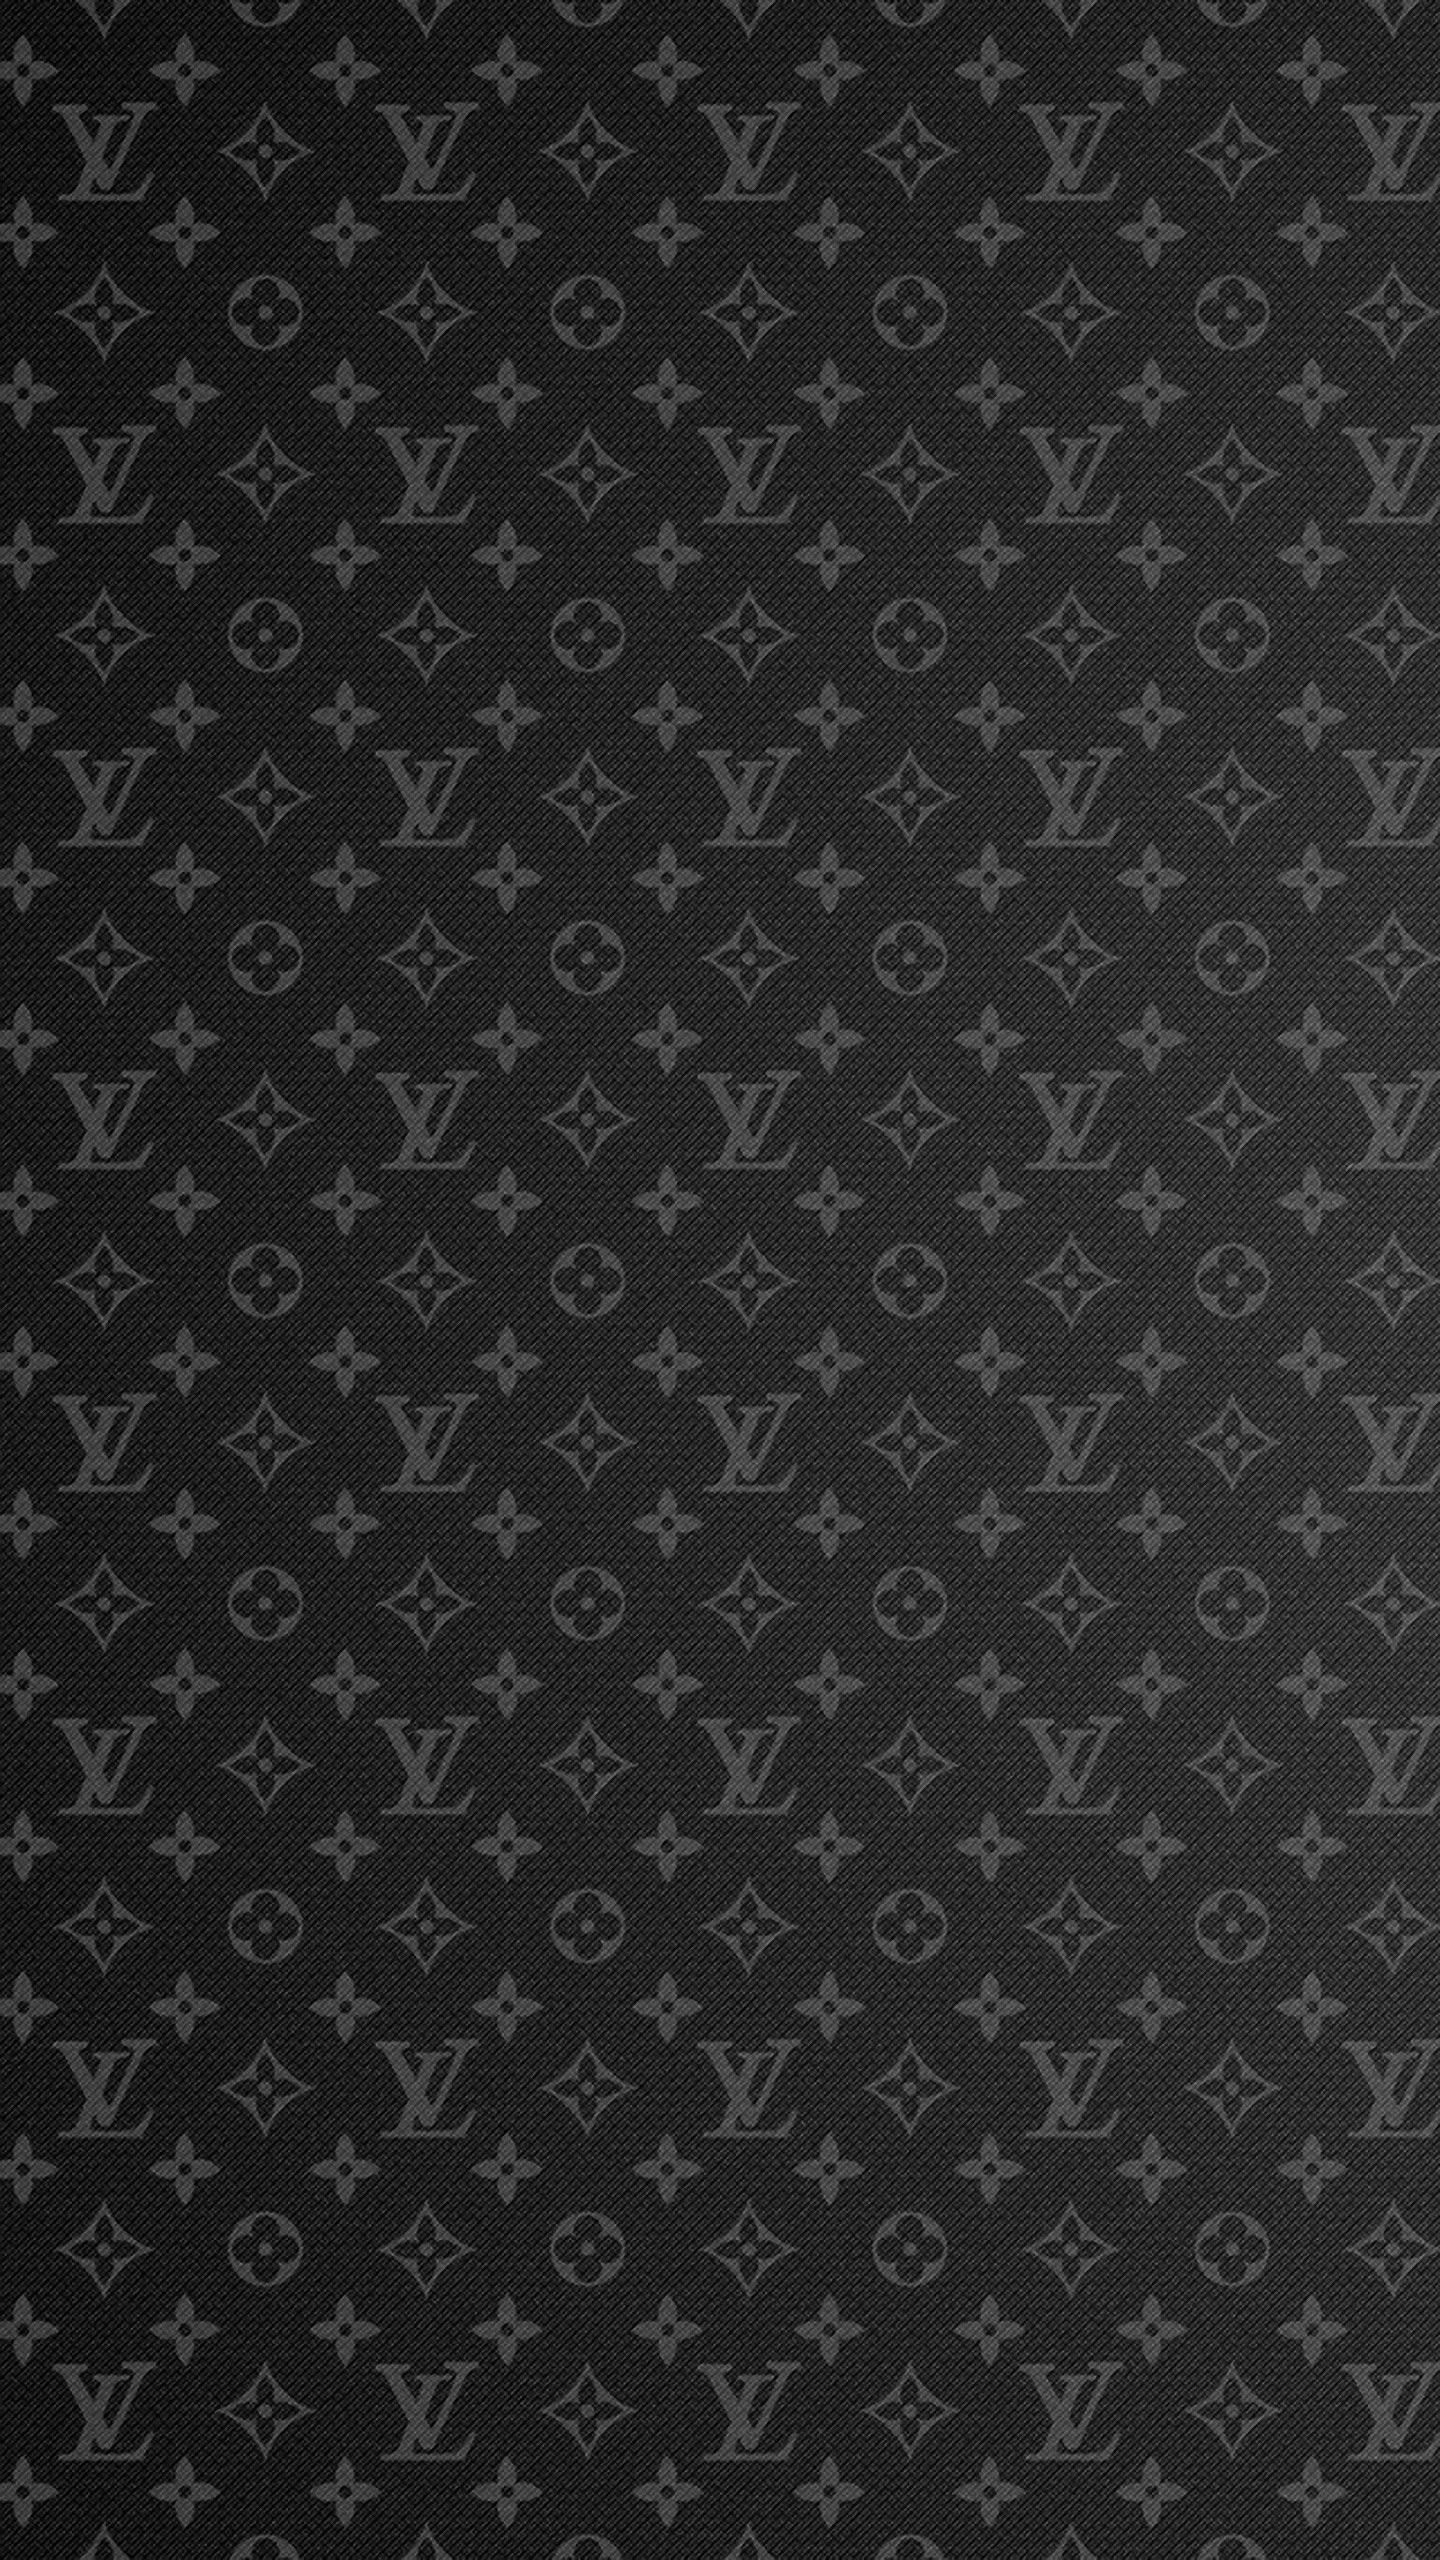 Louis Vuitton Download at: http://www.myfavwallpaper.com/2018